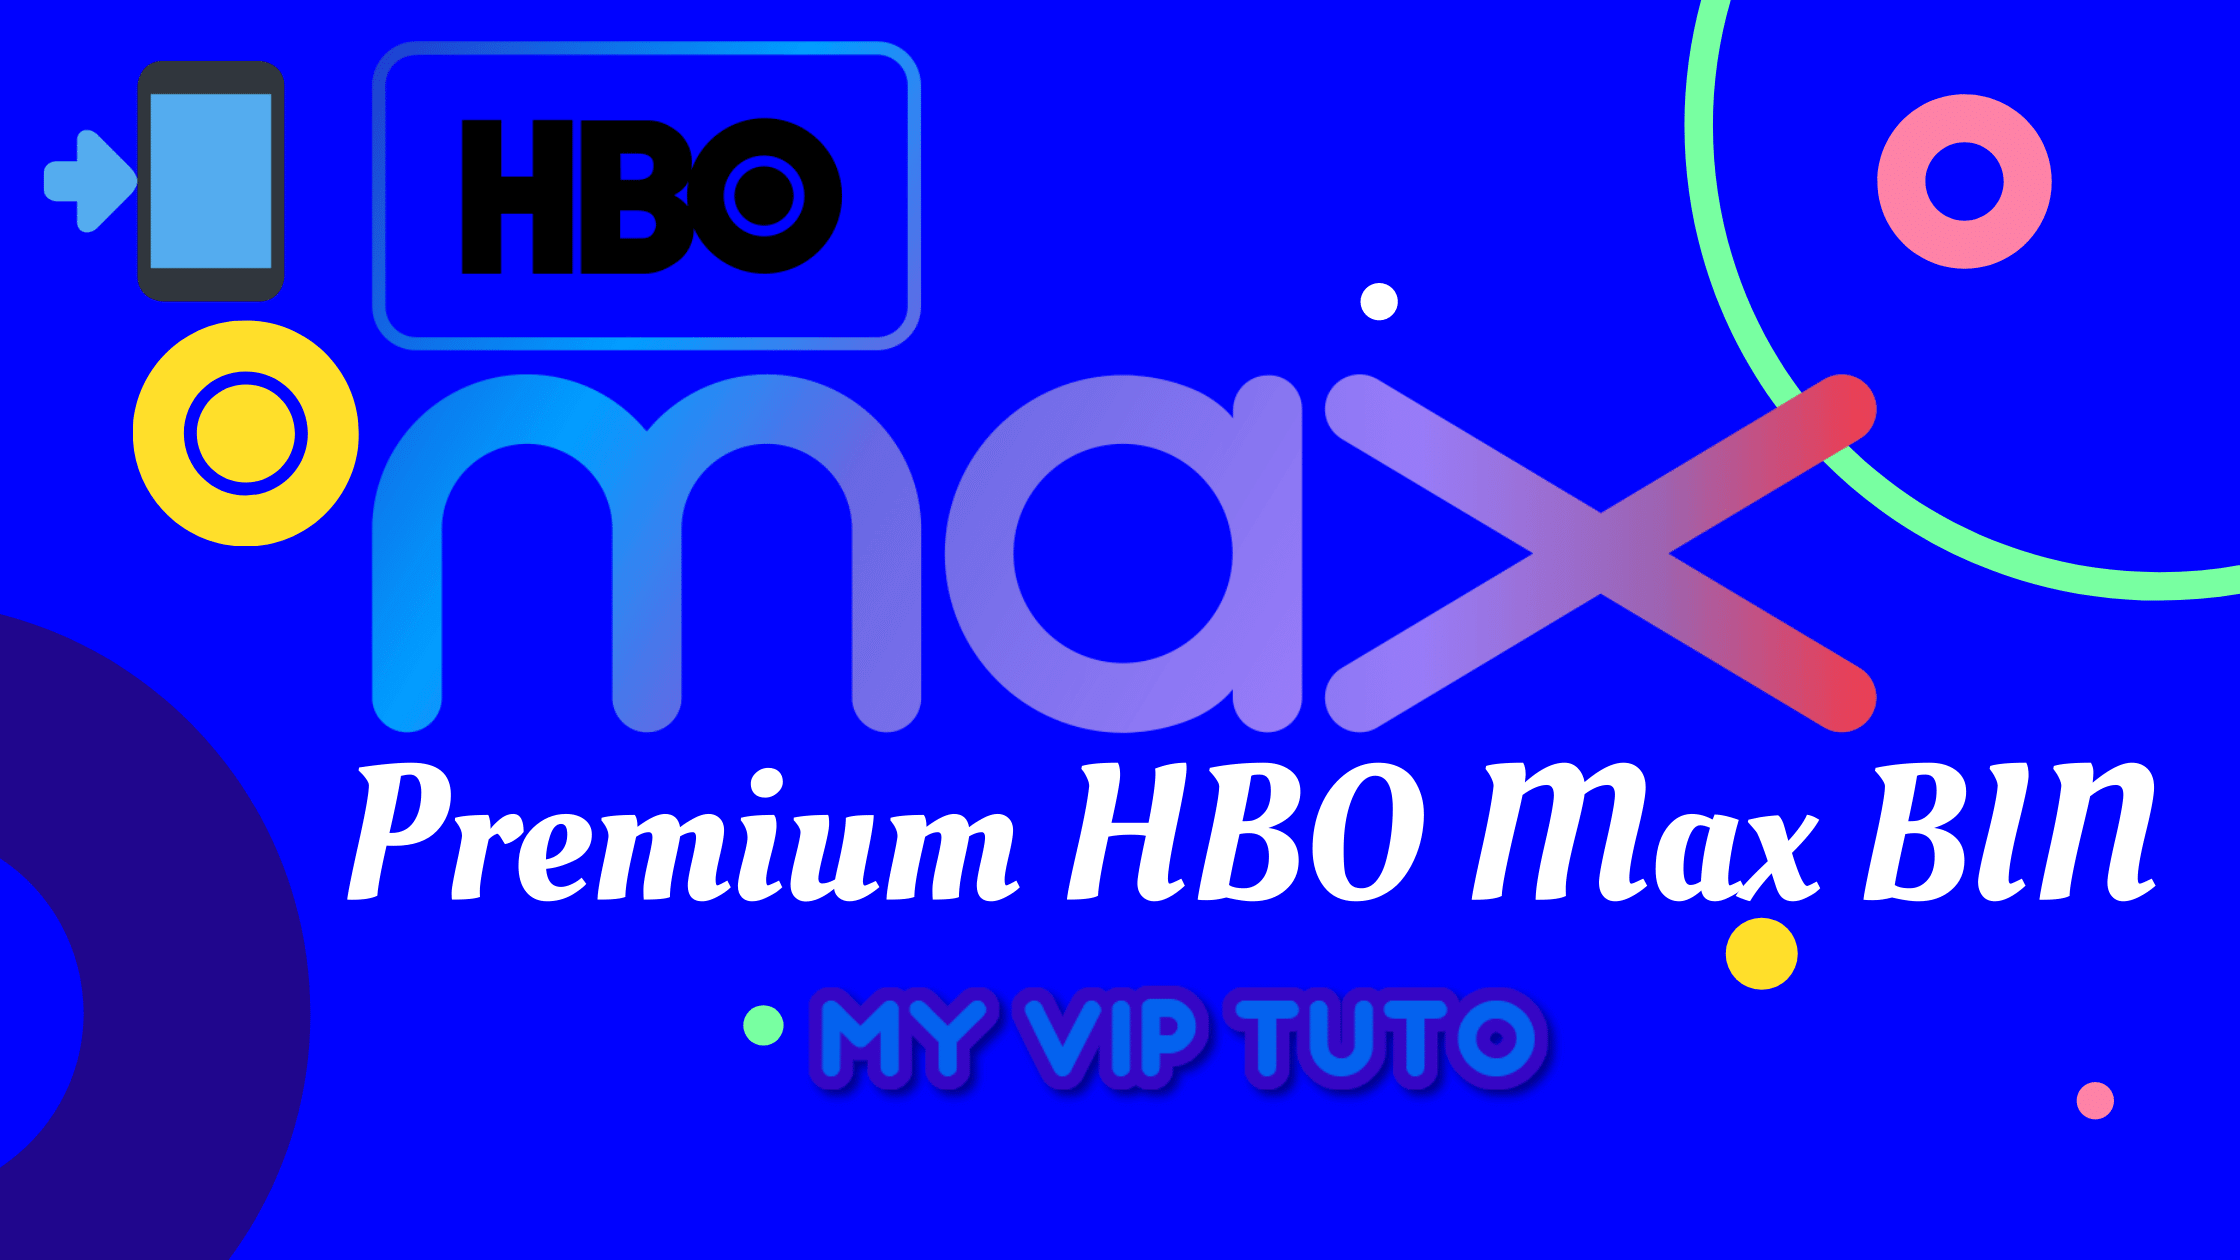 Premium HBO MAX BIN July 2020